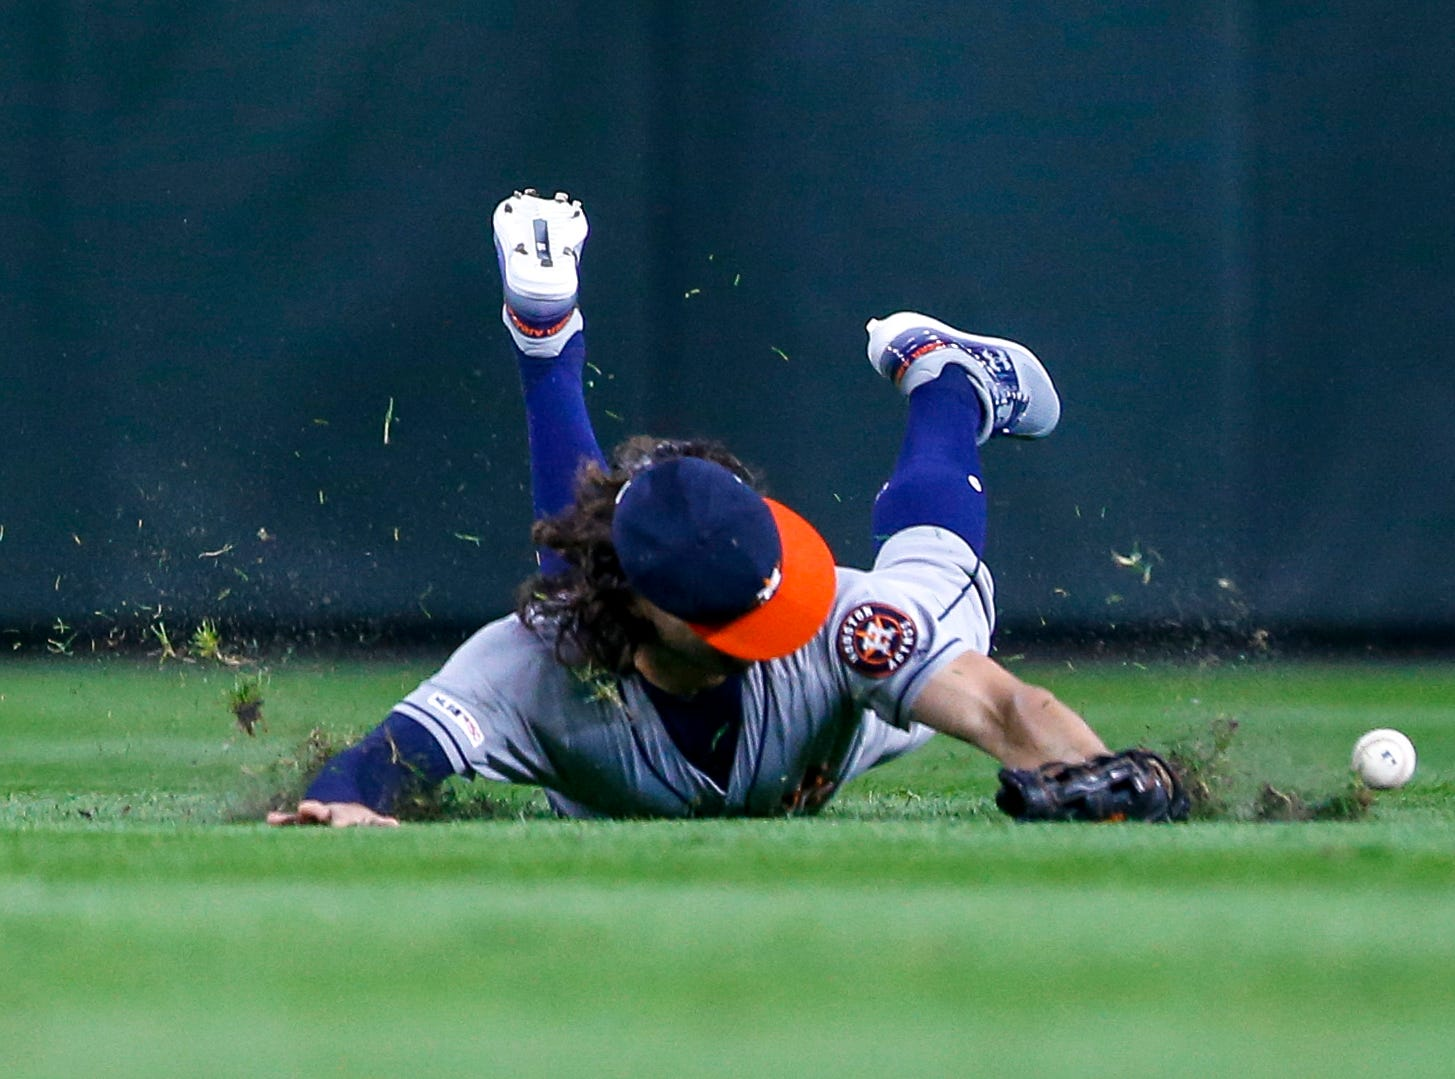 April 12: Houston Astros center fielder Jake Marisnick can't make the catch on a dive for a ball against the Seattle Mariners.